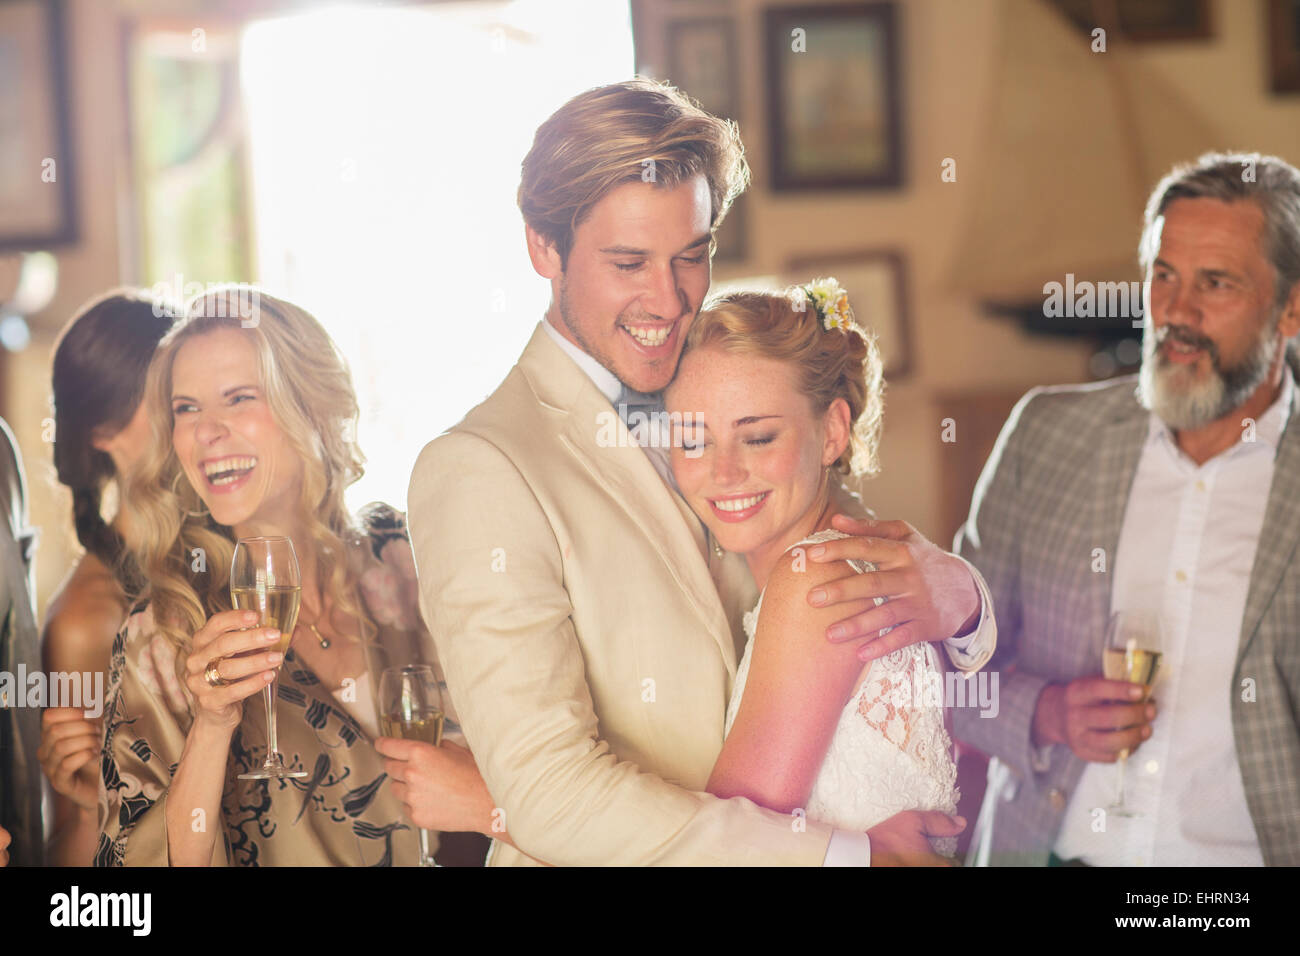 Young couple and guests at wedding reception in domestic room - Stock Image